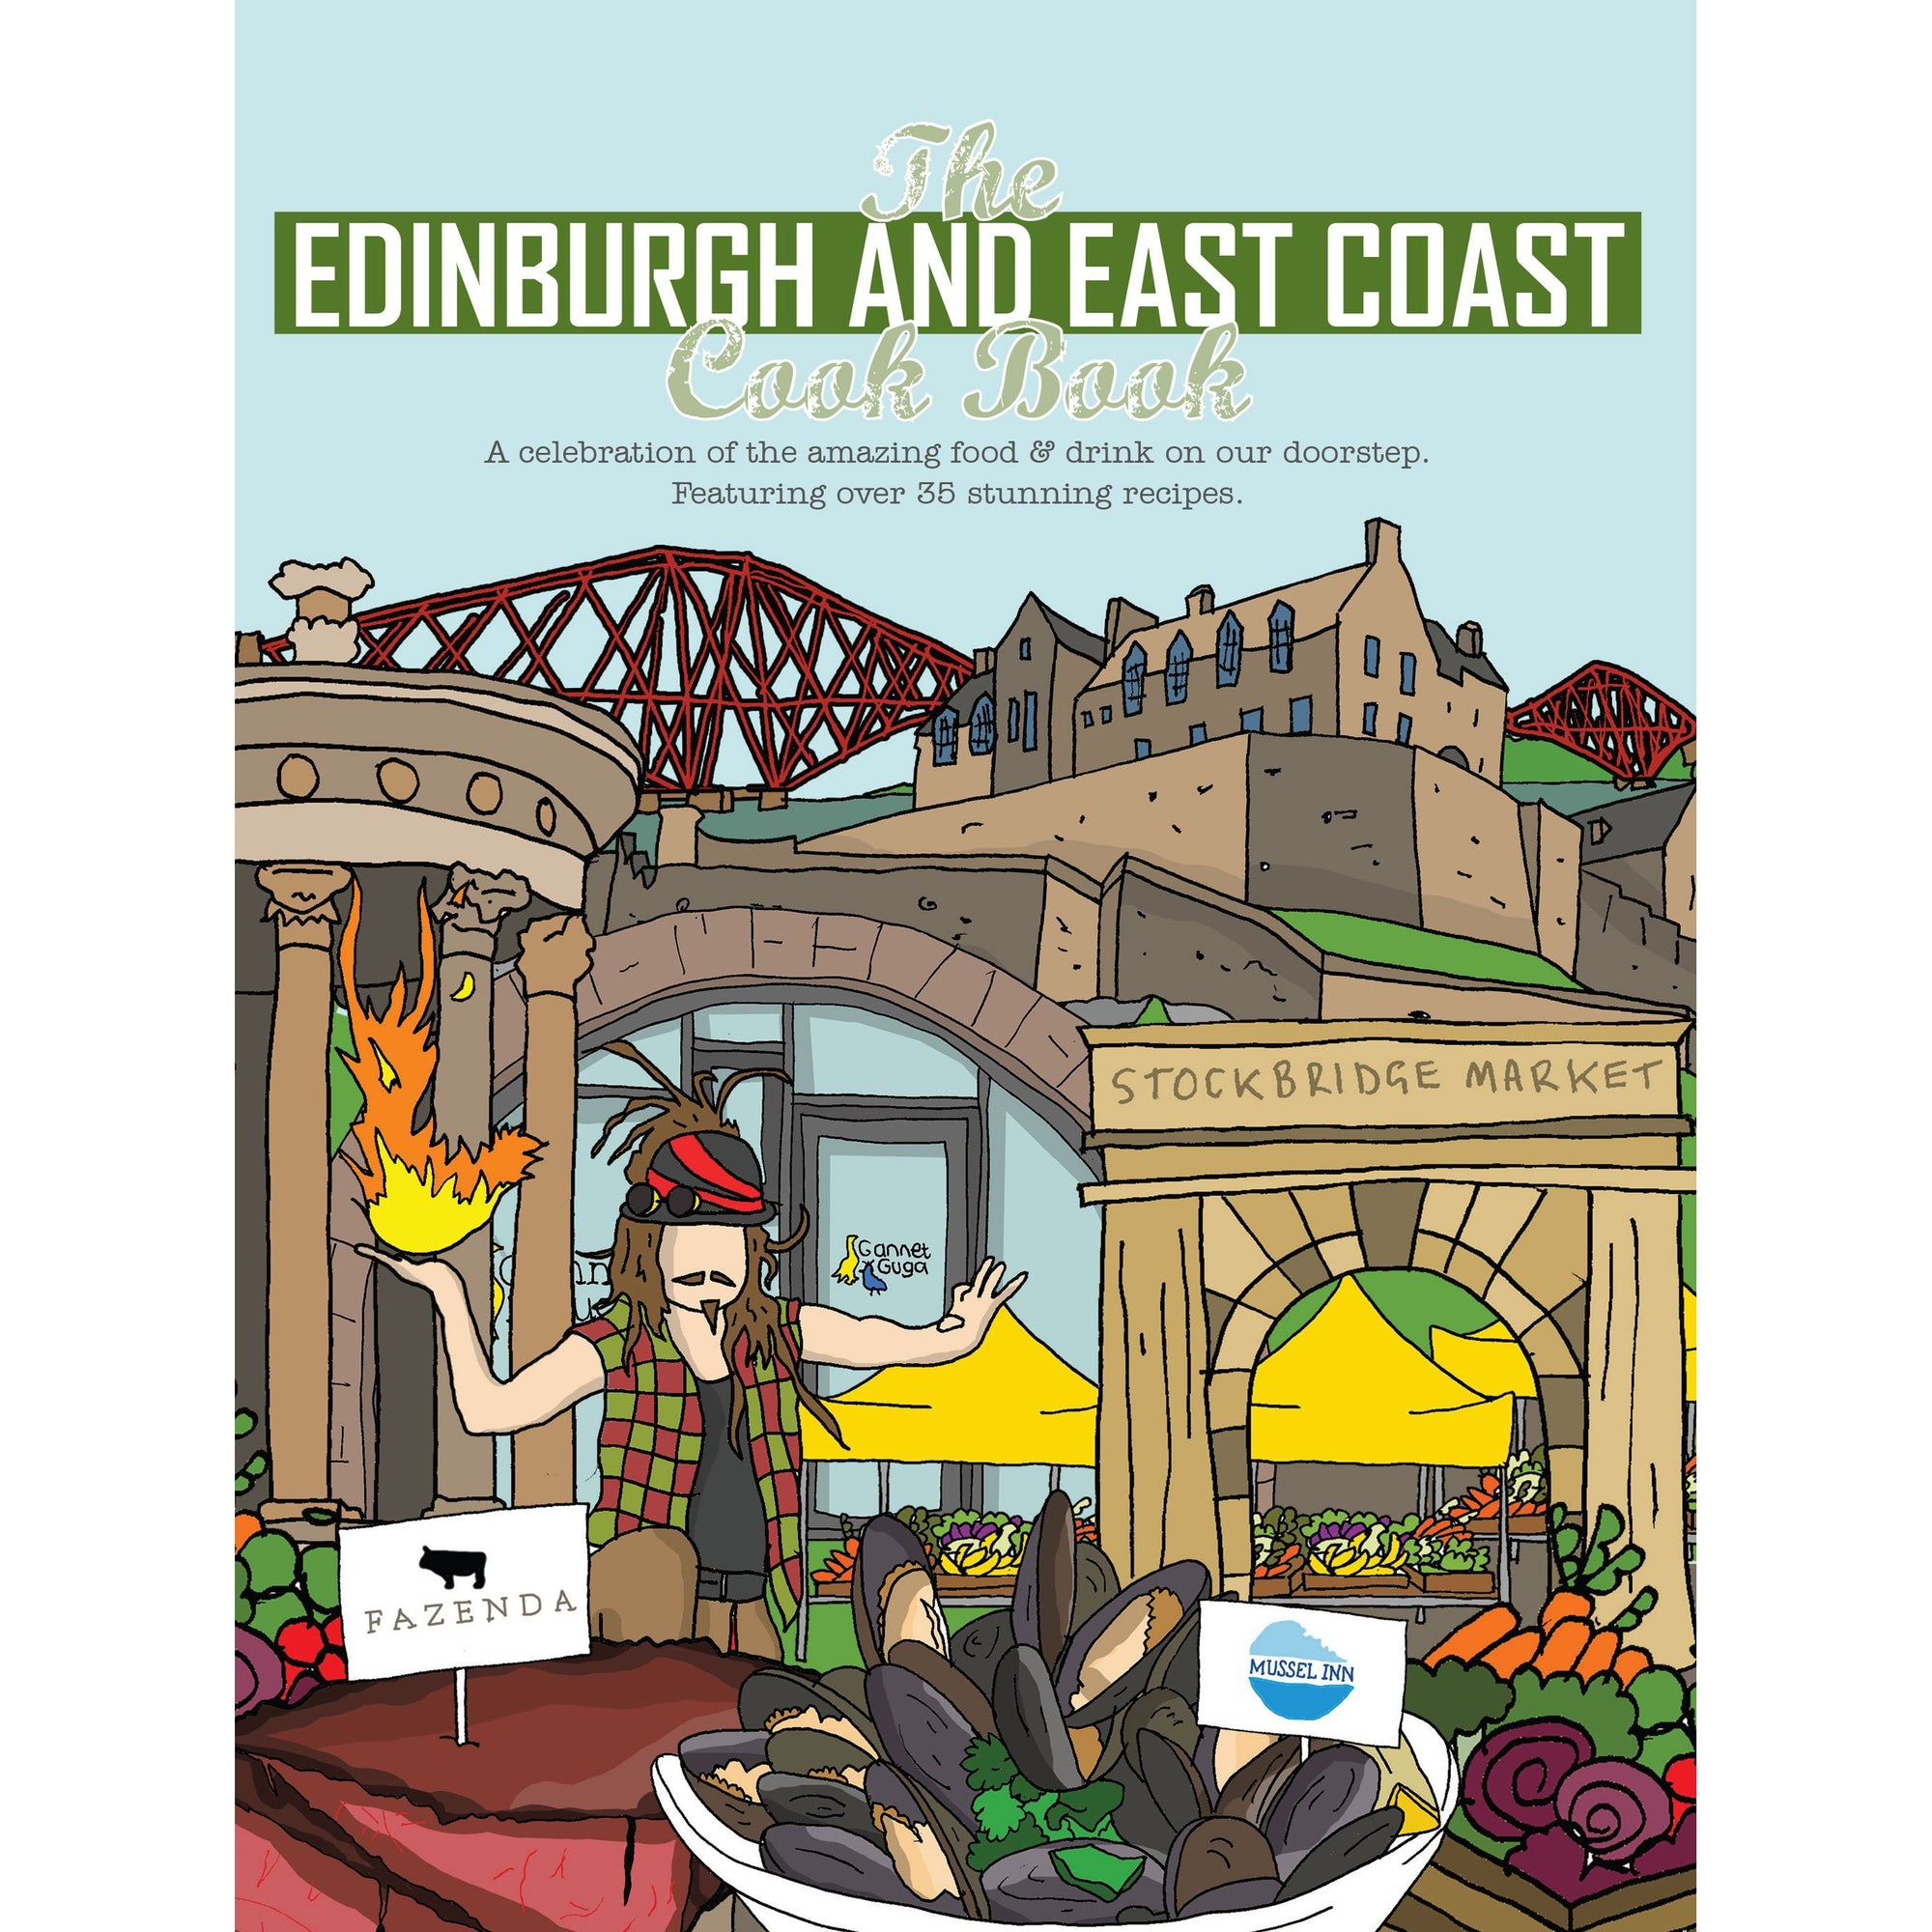 The Edinburgh and East Coast cook book